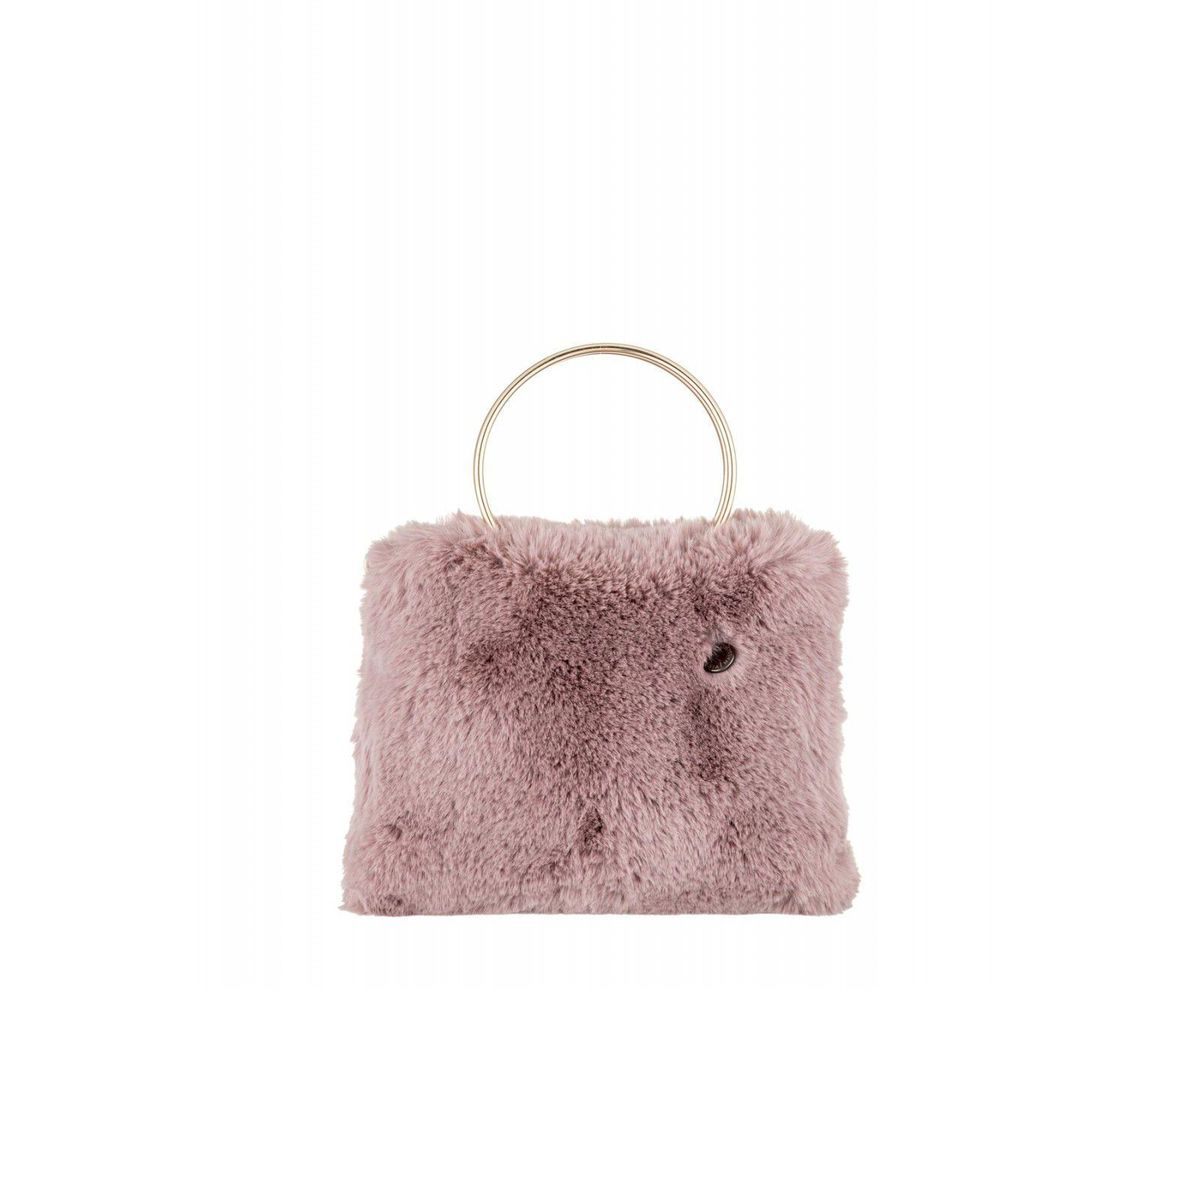 STYLE9000 BAG Pink Alessia Massimo